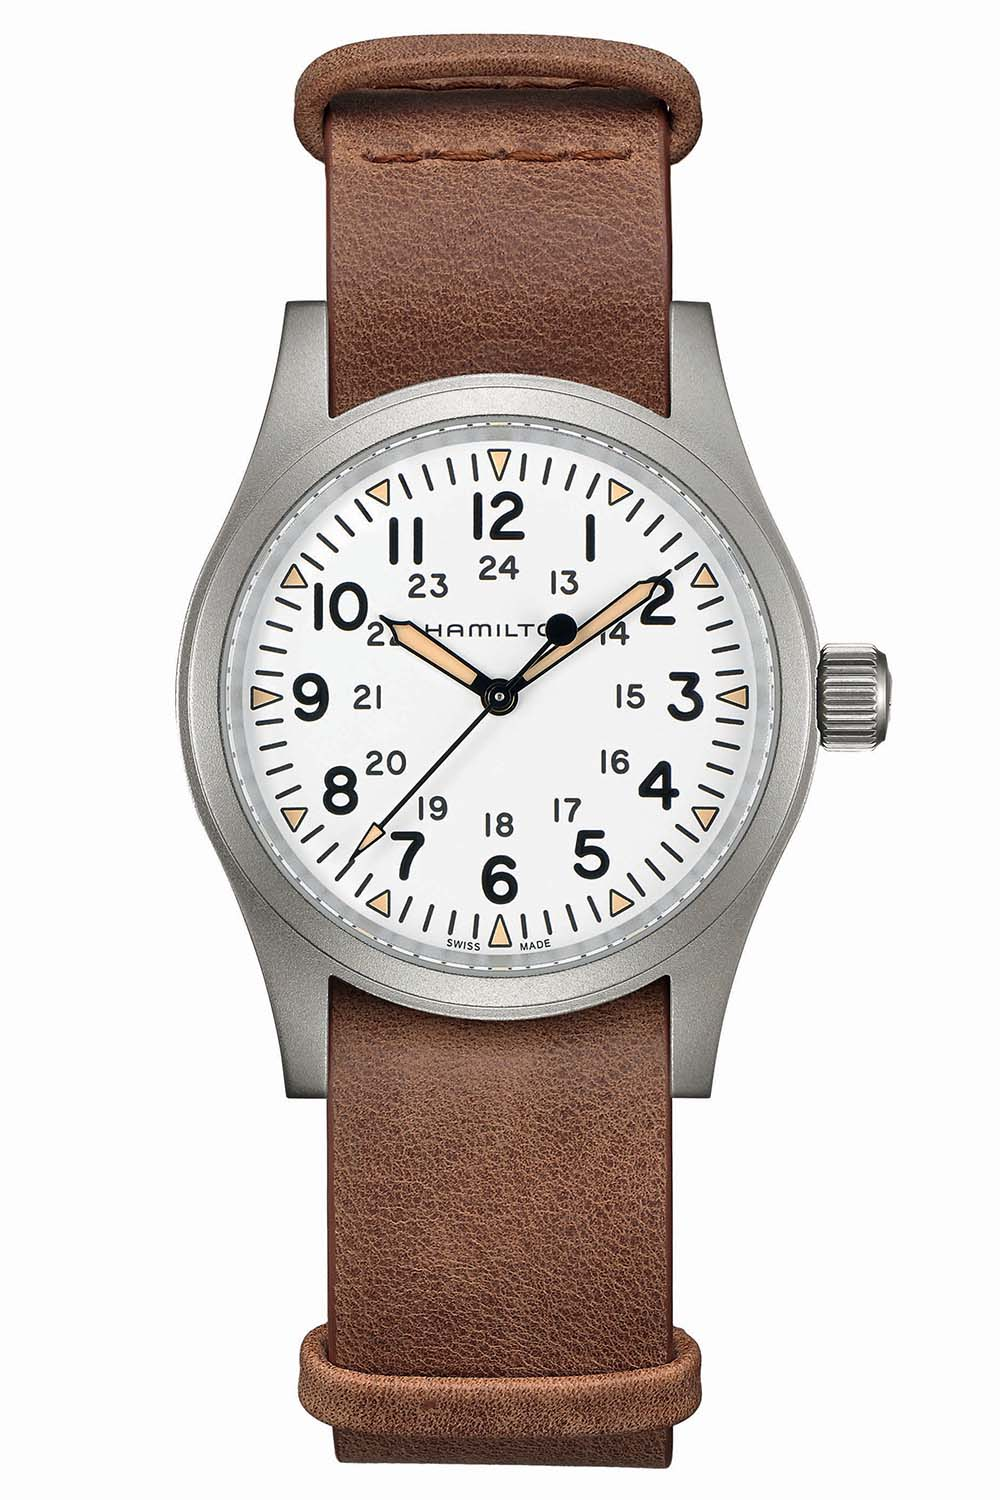 Introducing The Hamilton Khaki Field Mechanical 38mm Watches For 2019